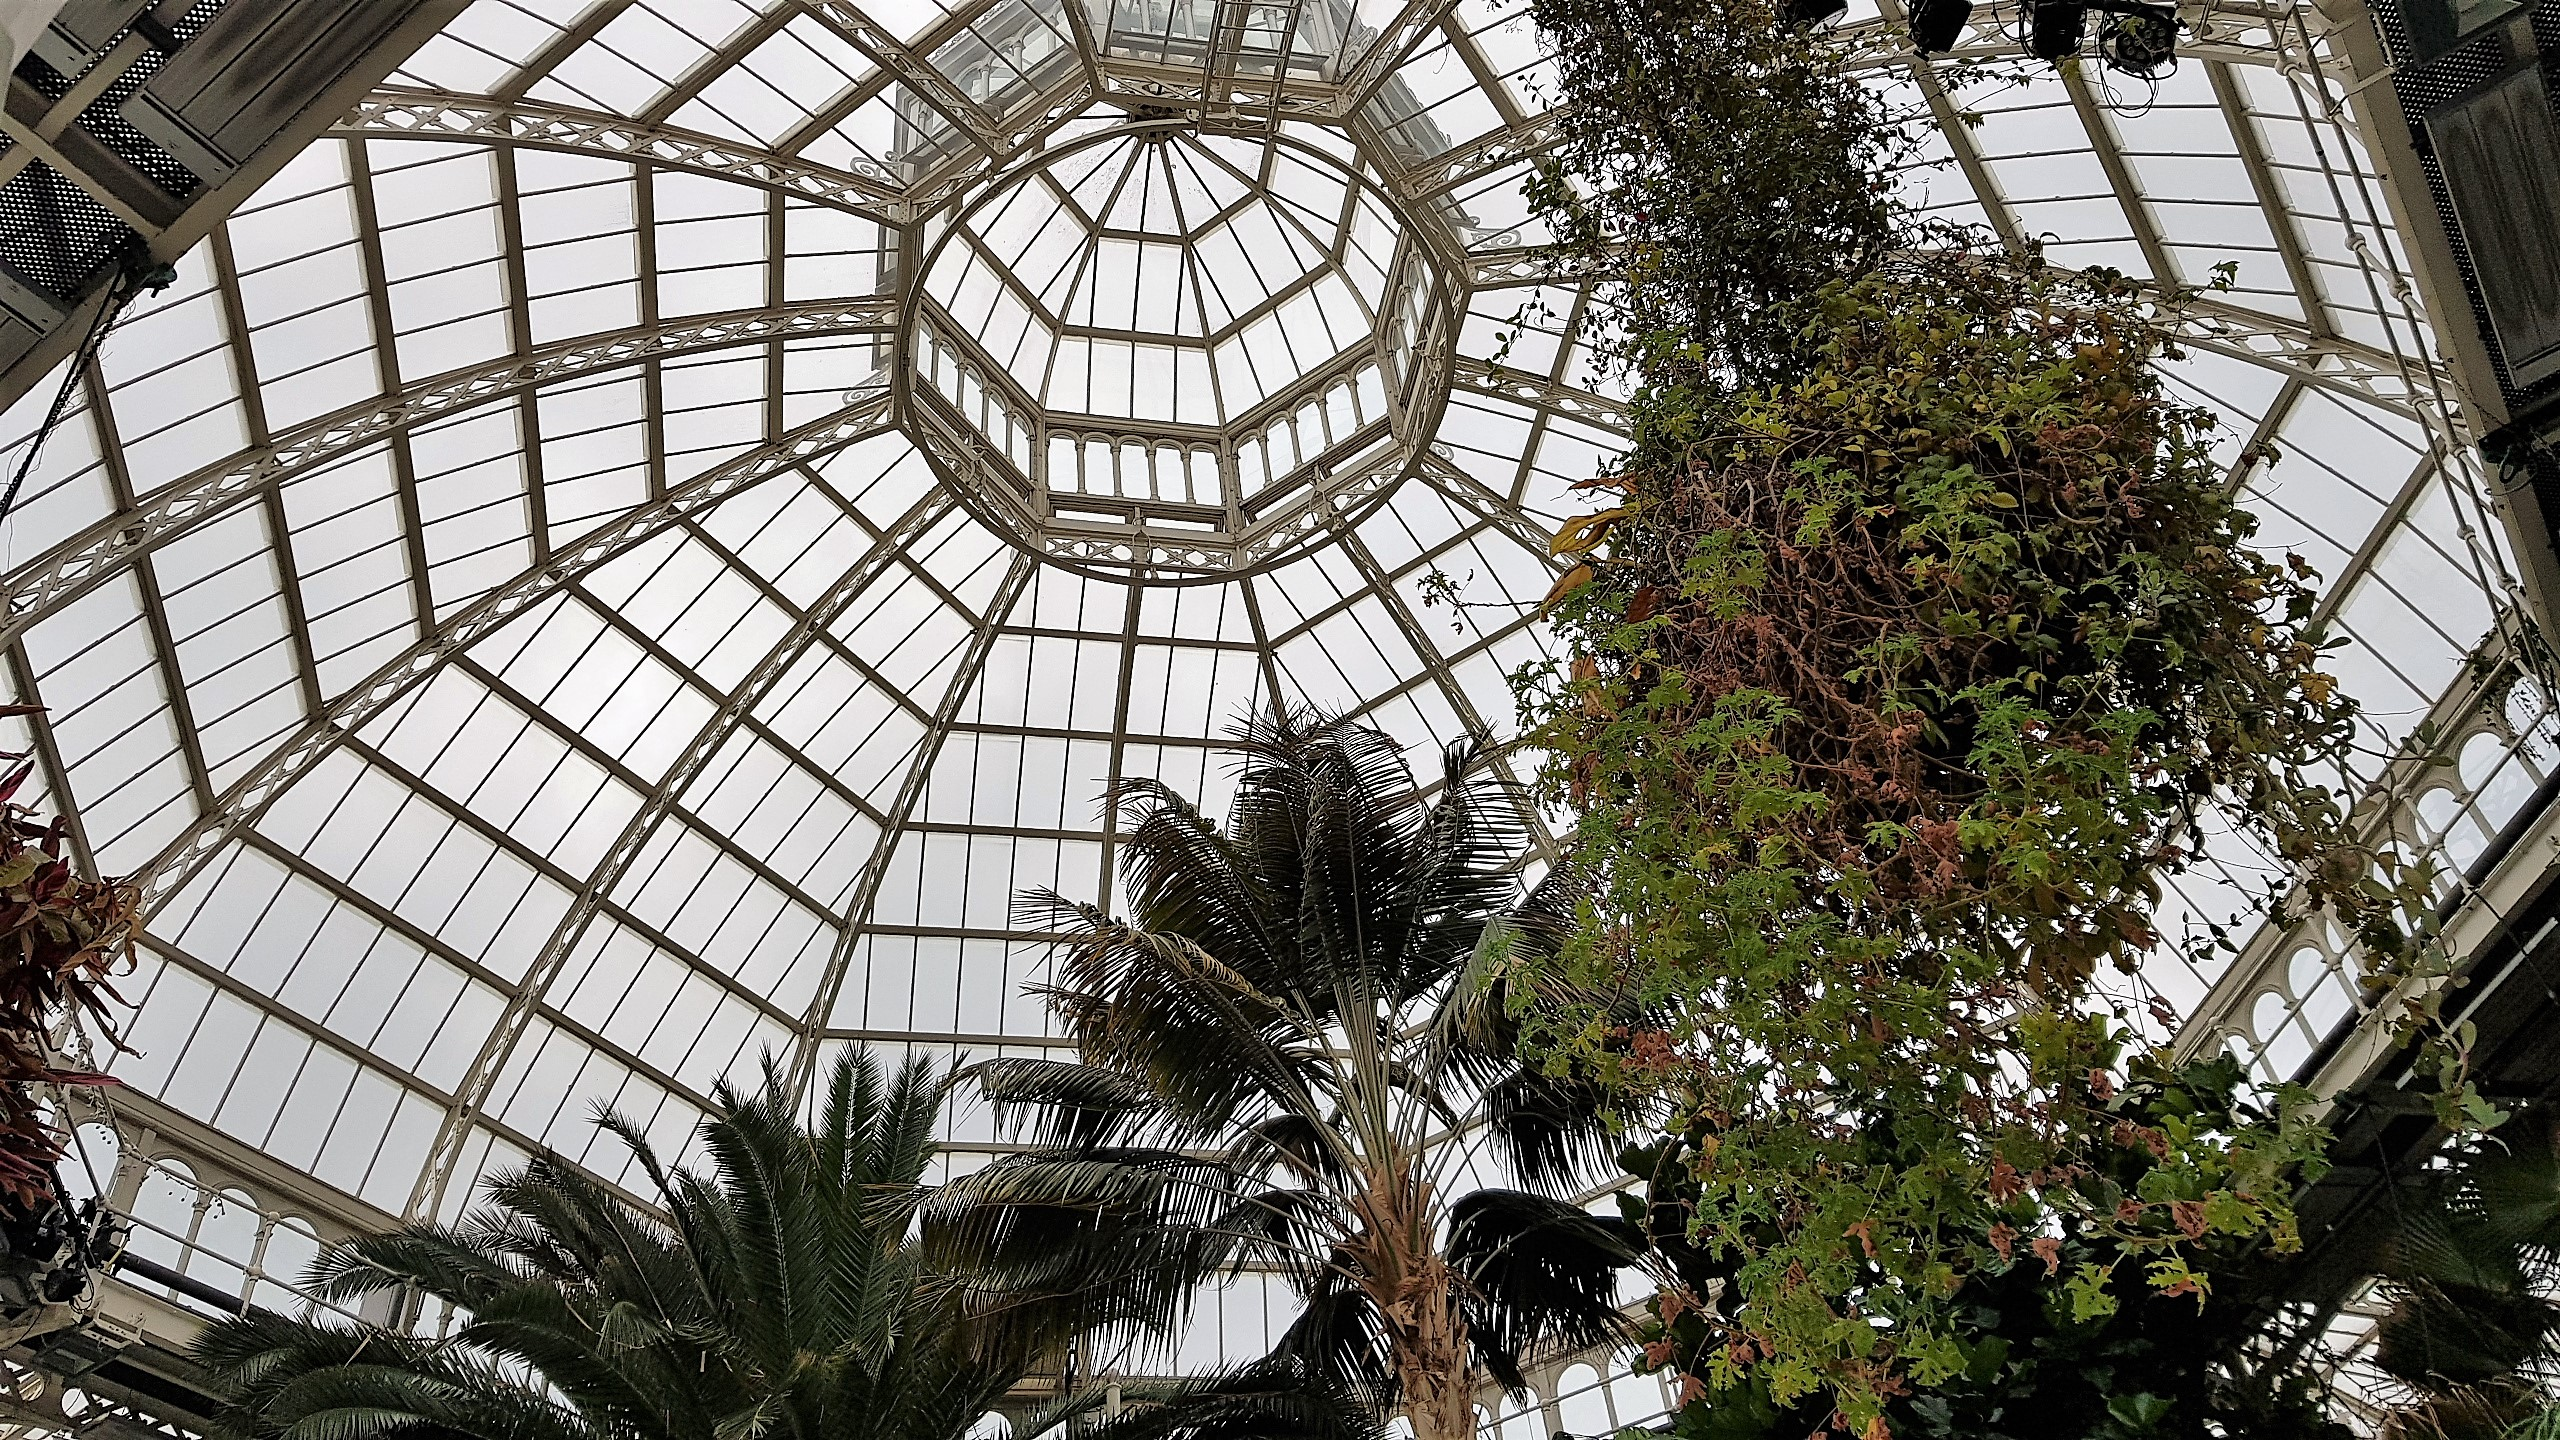 Circular glass roof with plants hanging from it